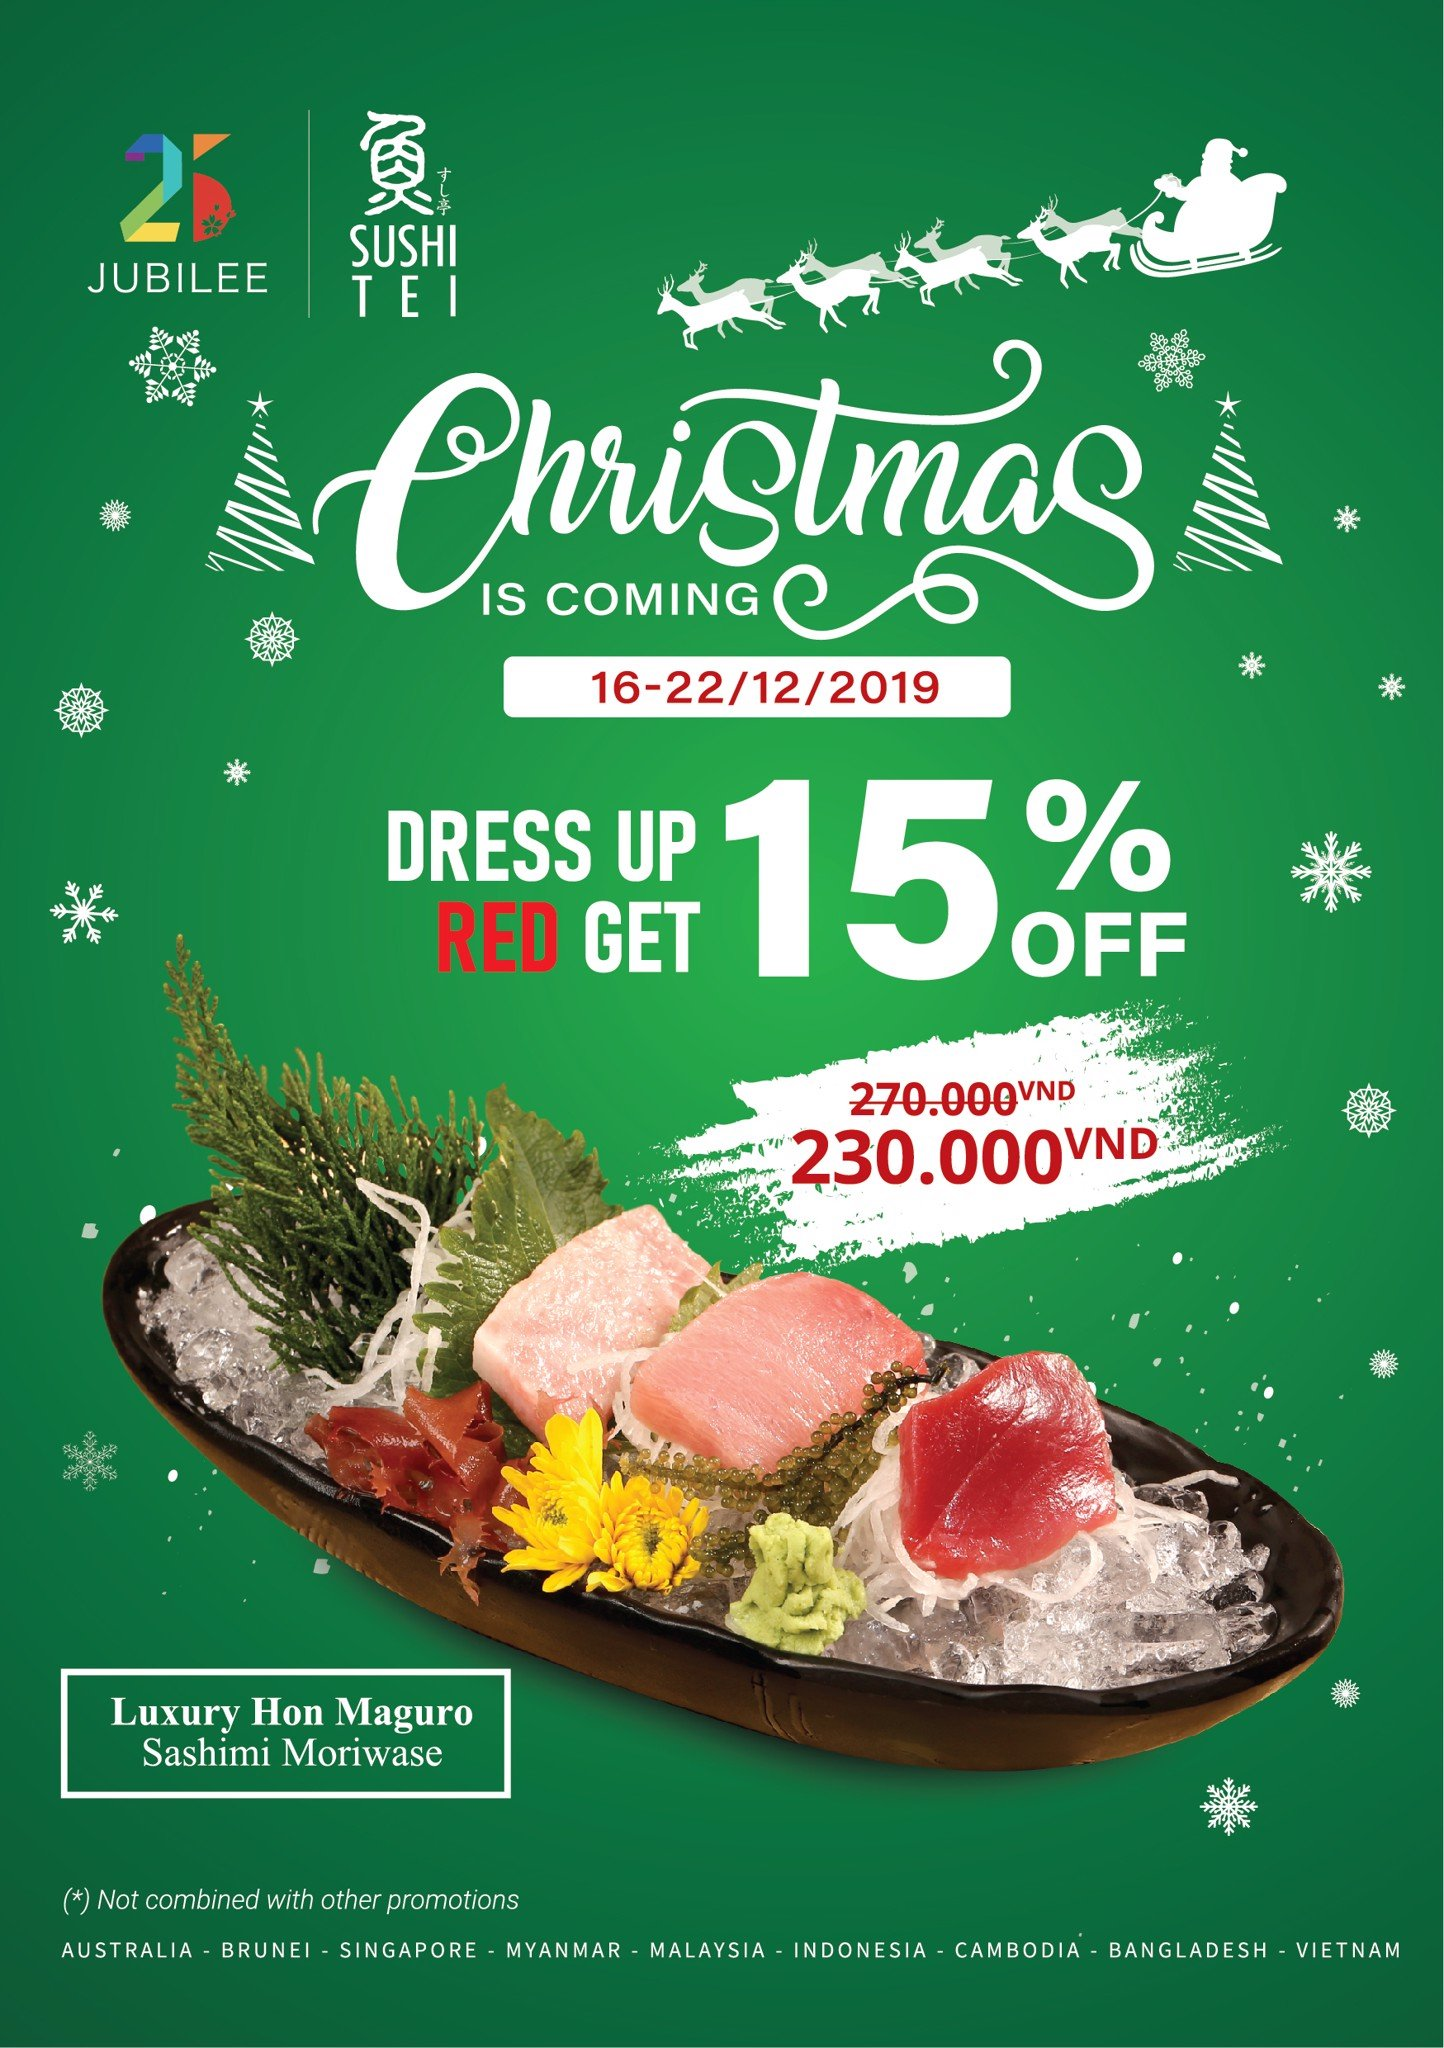 [CHRISTMAS IS COMING] LET'S DRESS UP RED AND GET 15% OFF FOR LUXURY TUNA